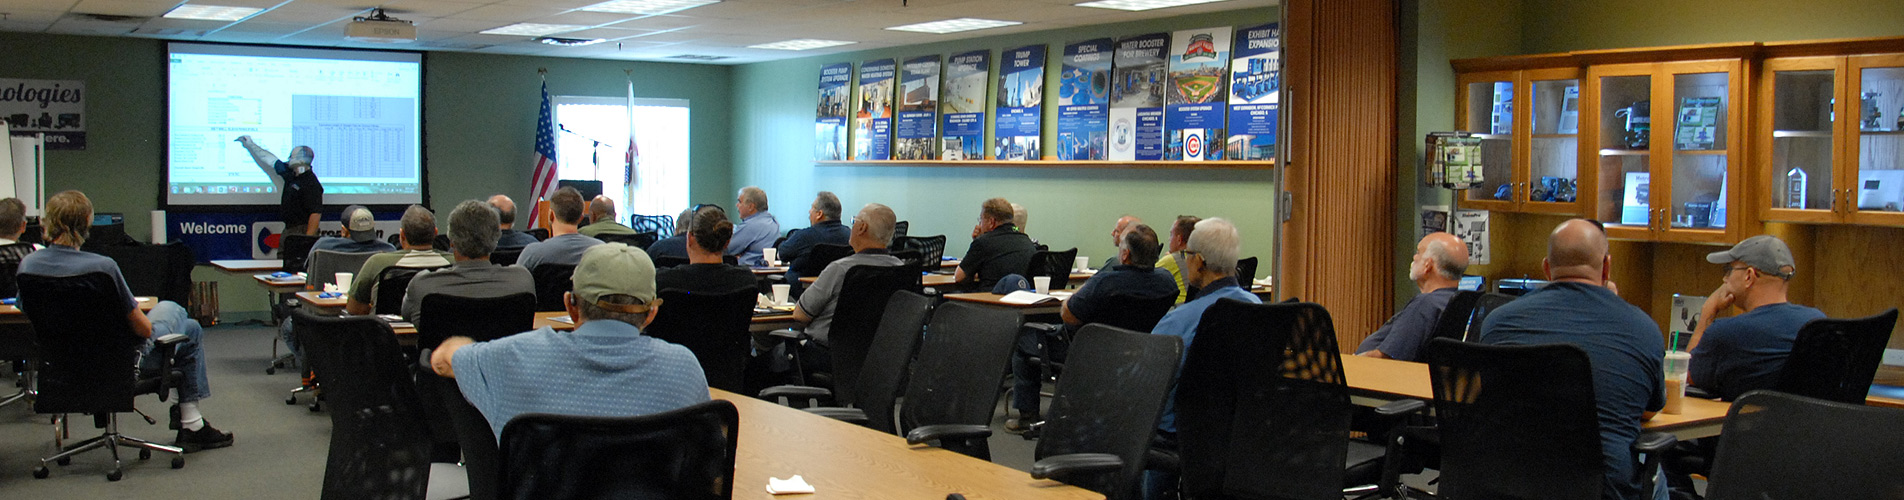 Learn more about attending one of our training seminars for pump system and control integration.